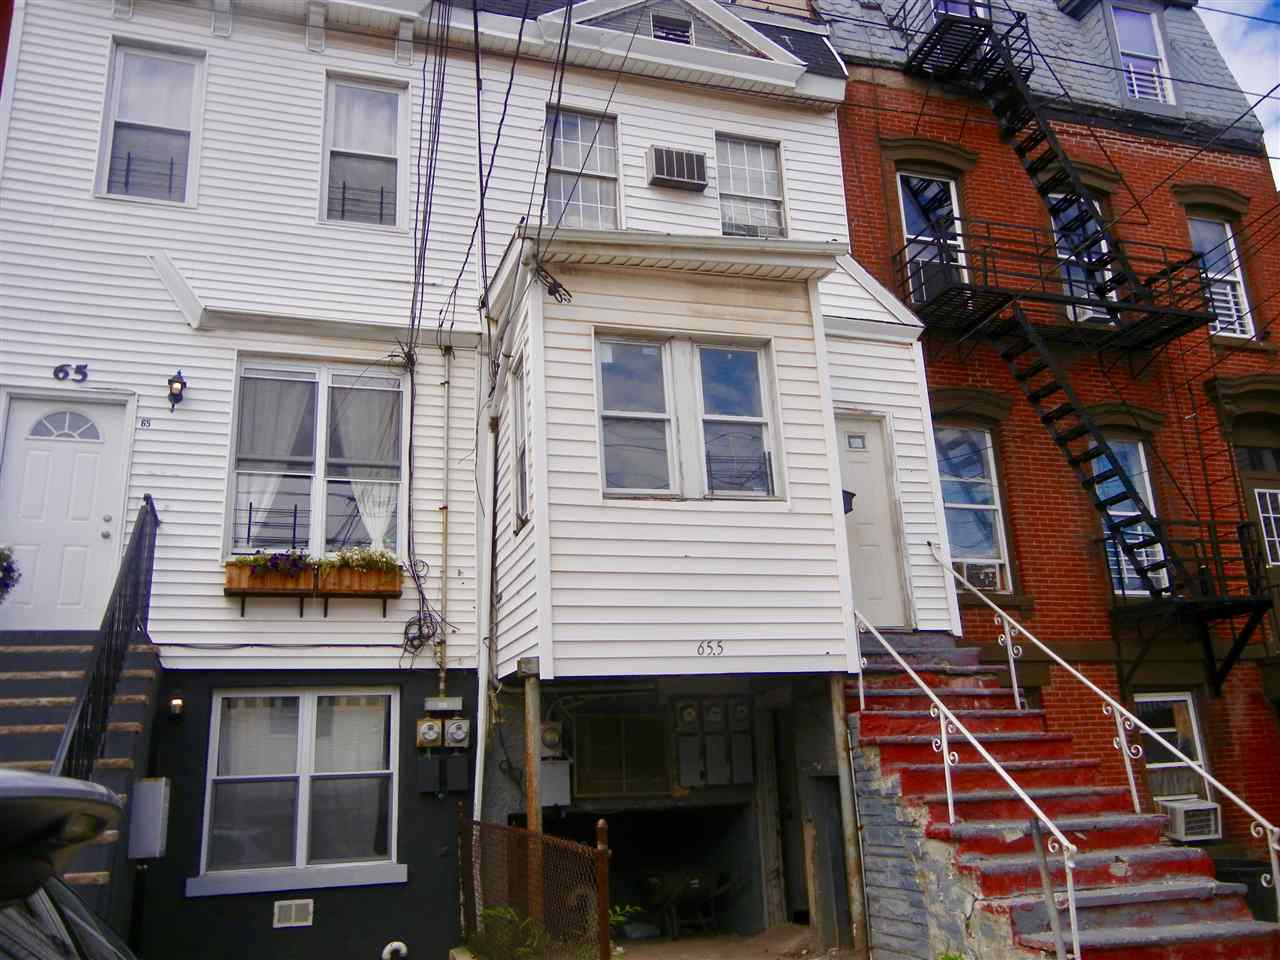 65.5 ATLANTIC ST, JC, Bergen-Lafayett, NJ 07304